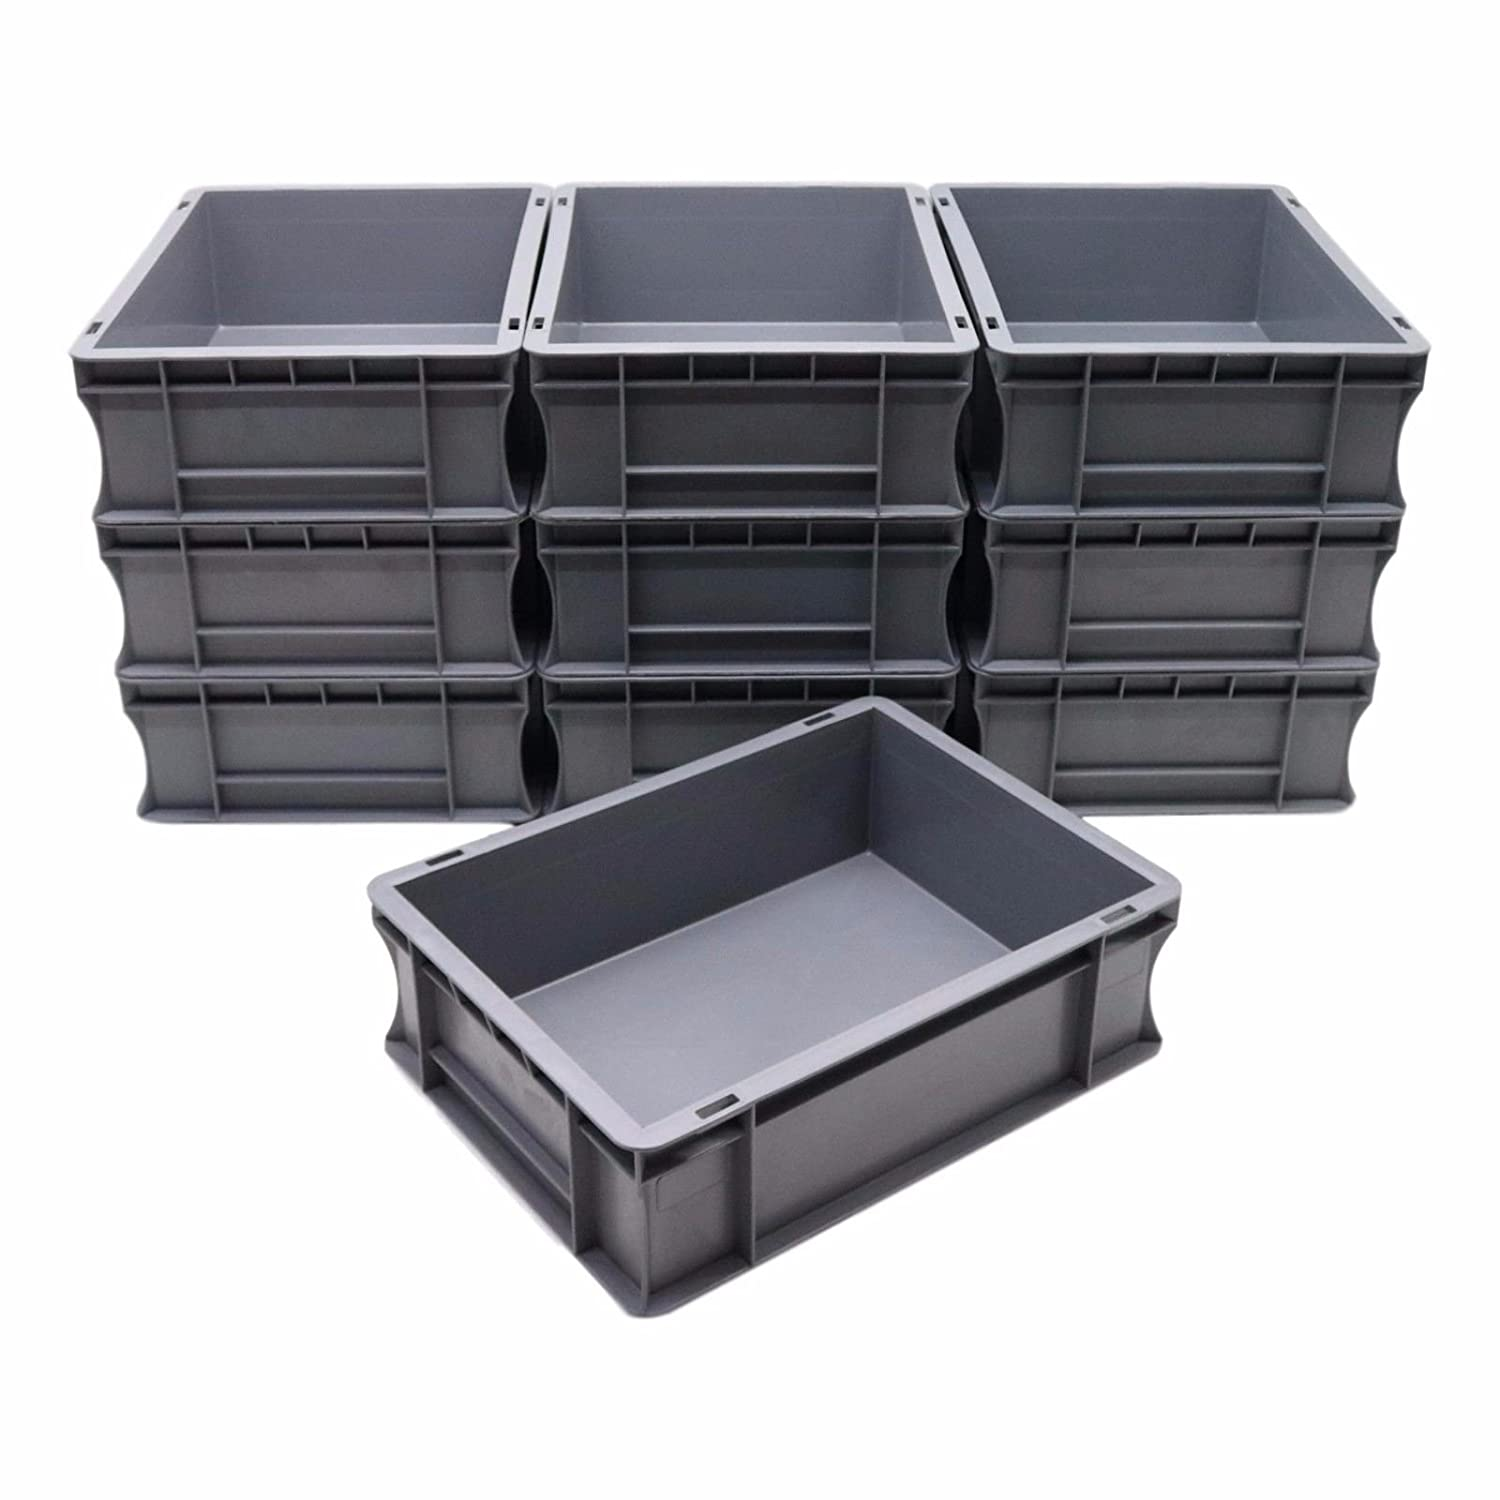 10 x 10 Litre Strong Plastic Parts Storage Container Euro Boxes Bins 3JC Ltd